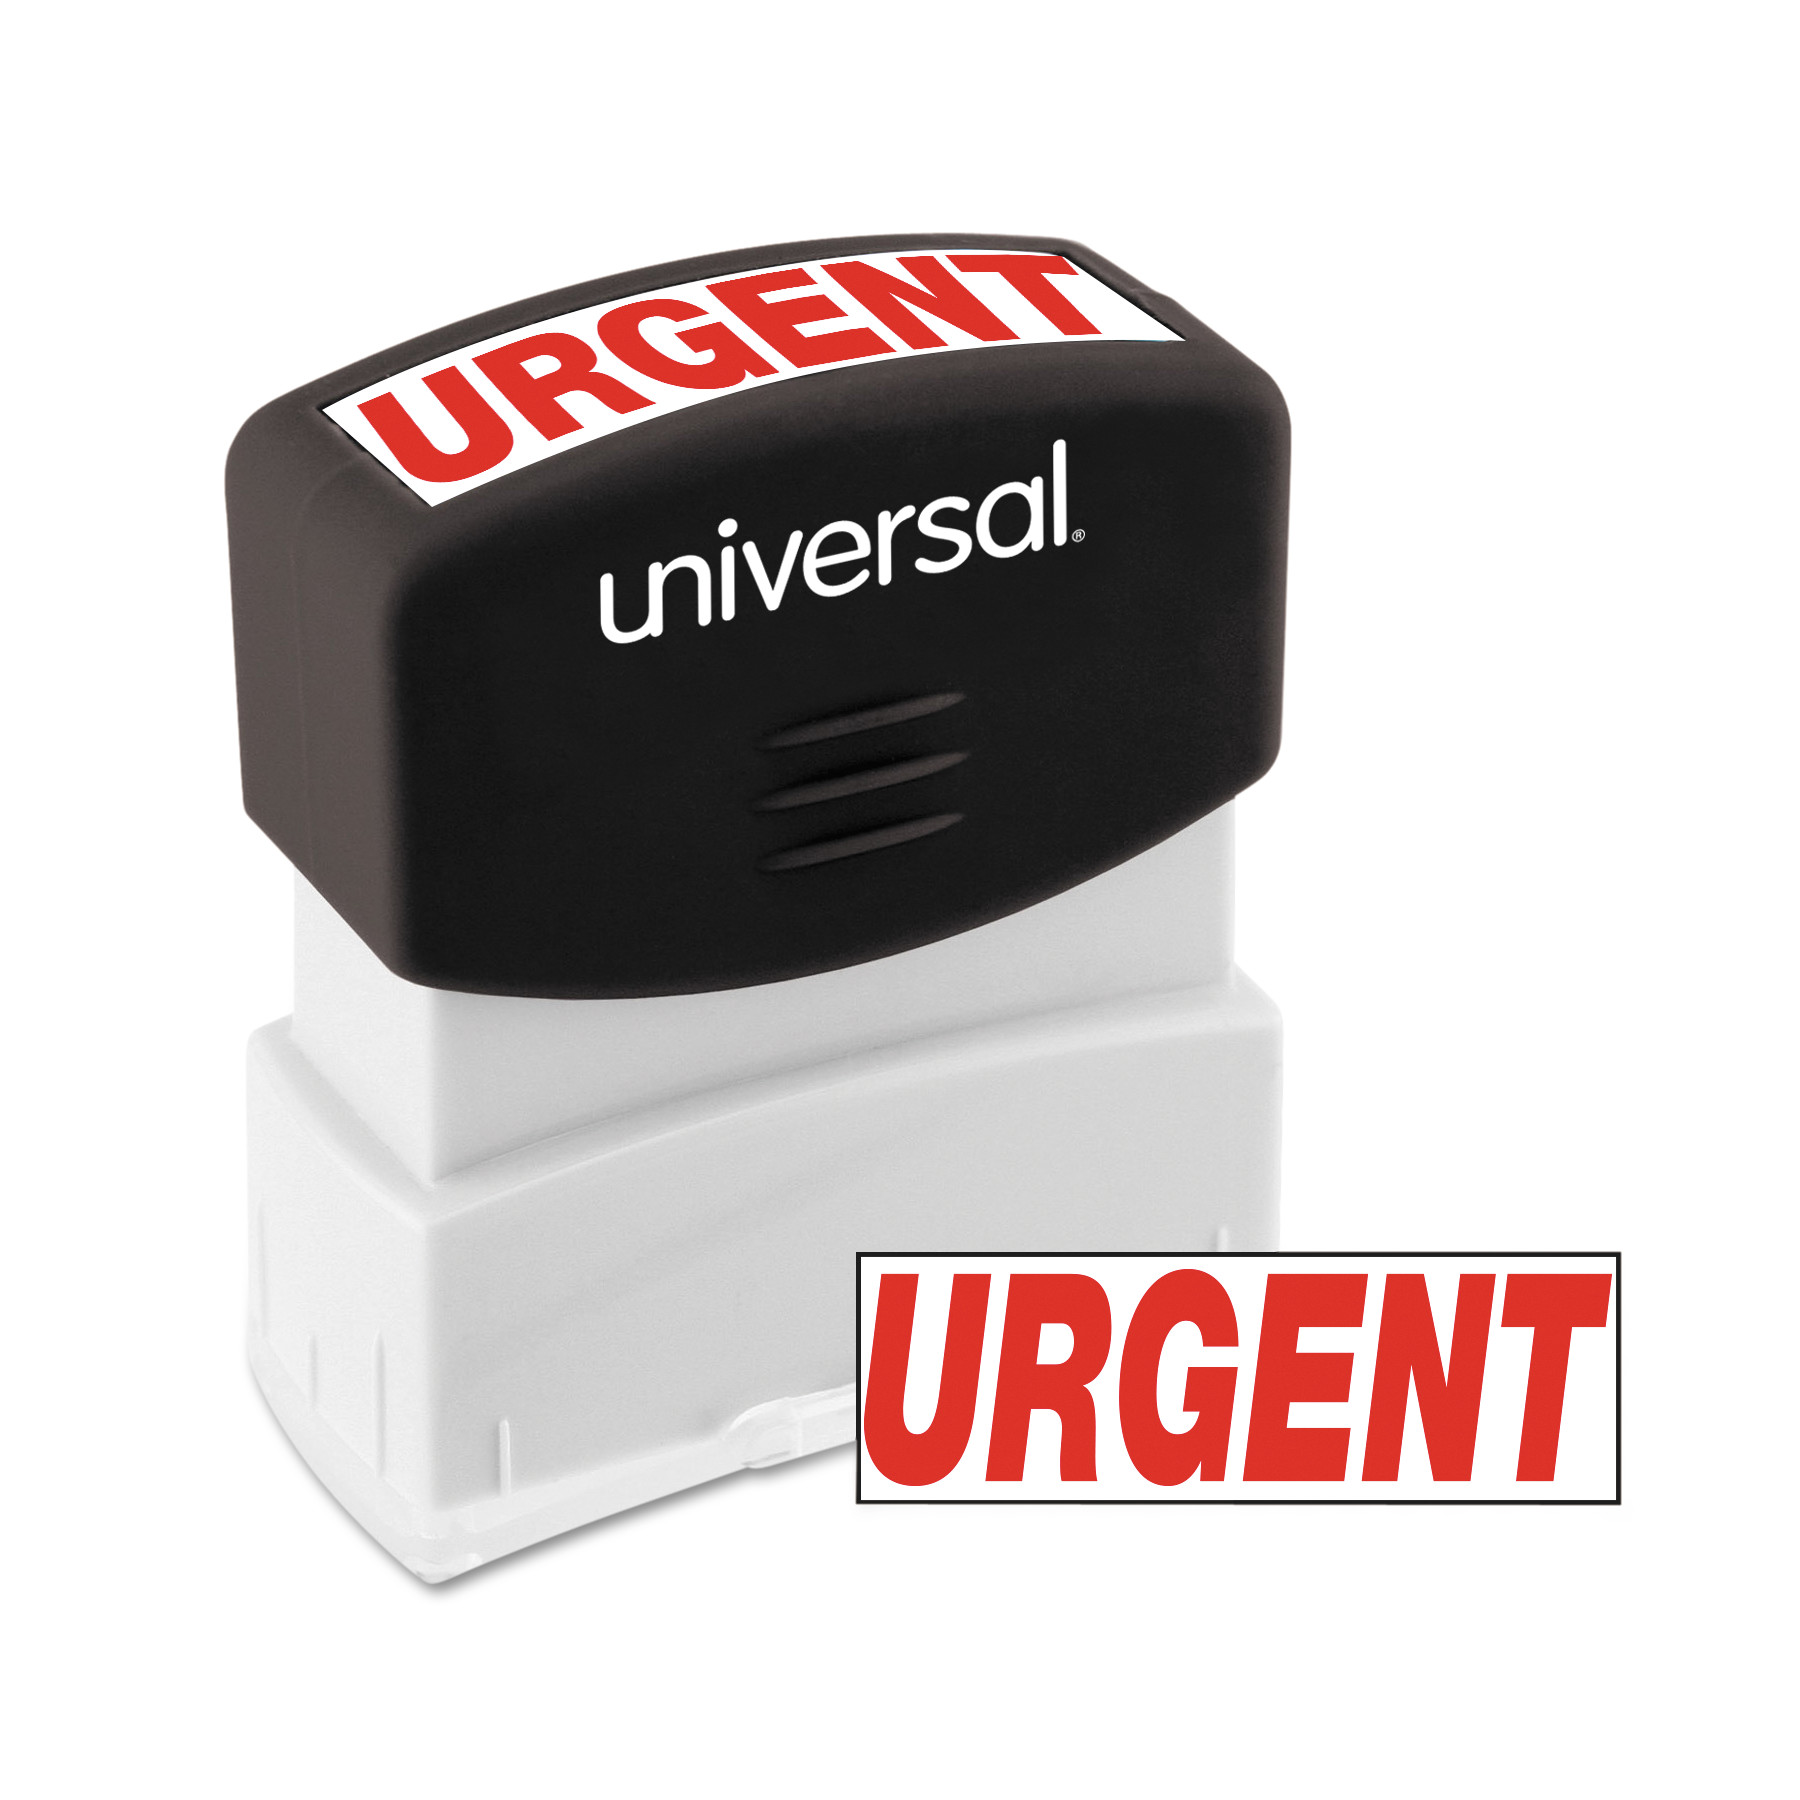 Universal Message Stamp, URGENT, Pre-Inked One-Color, Red -UNV10070